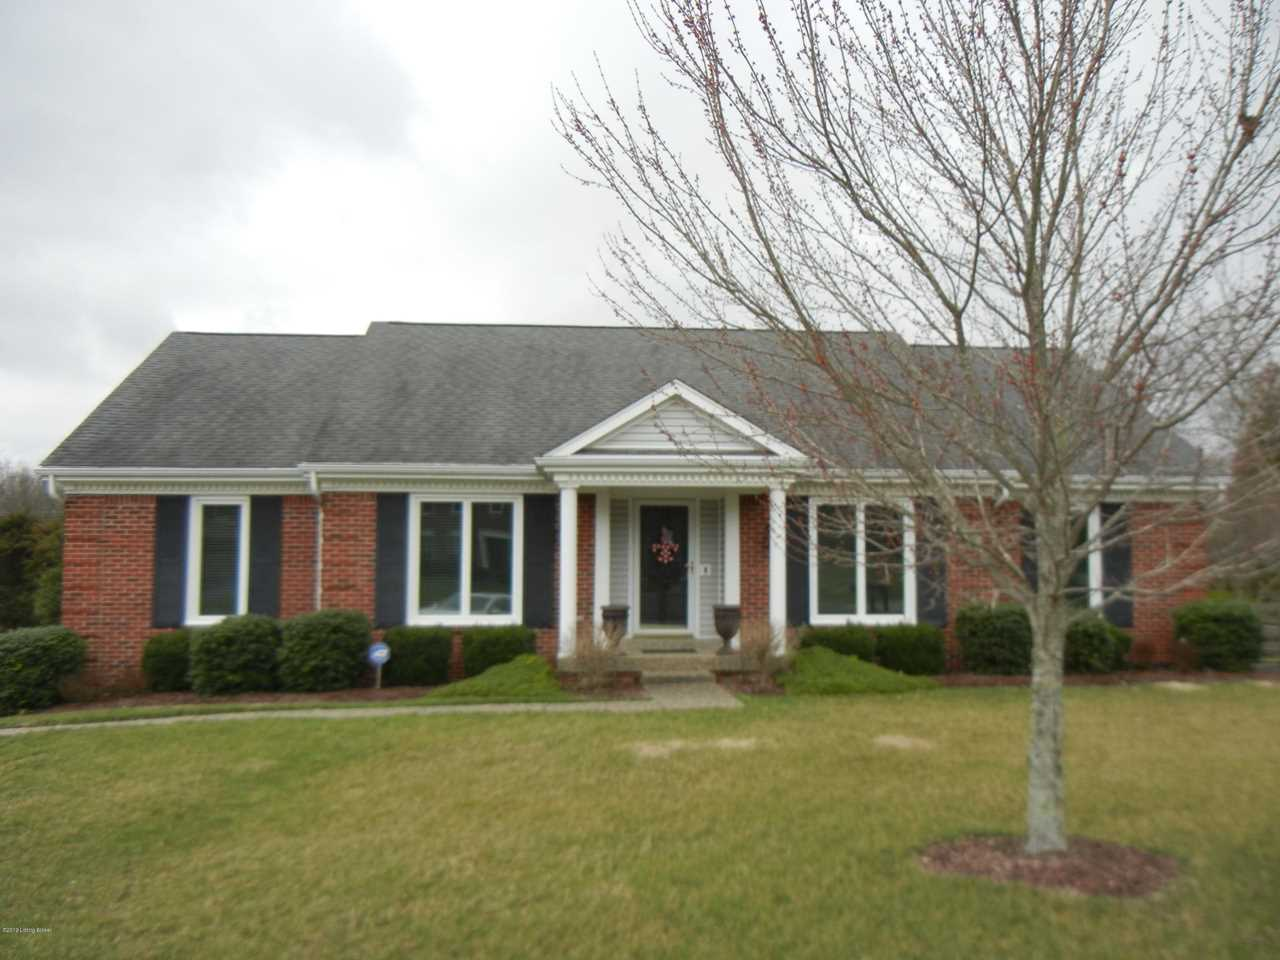 5312 Schureck Ct La Grange, KY 40031 | MLS 1526857 Photo 1